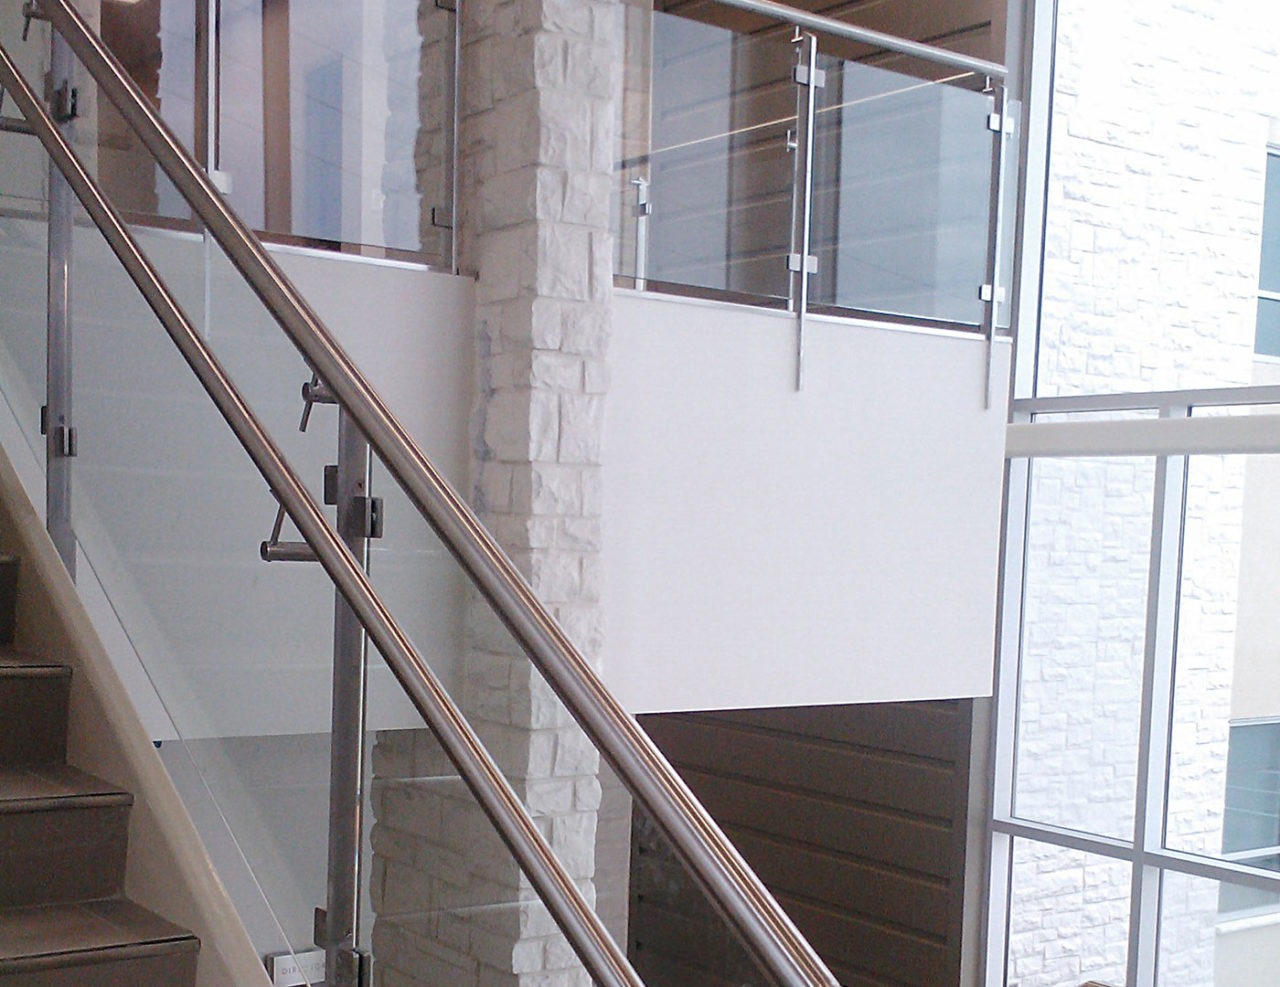 Summit railing system with stainless steel posts and glass infill